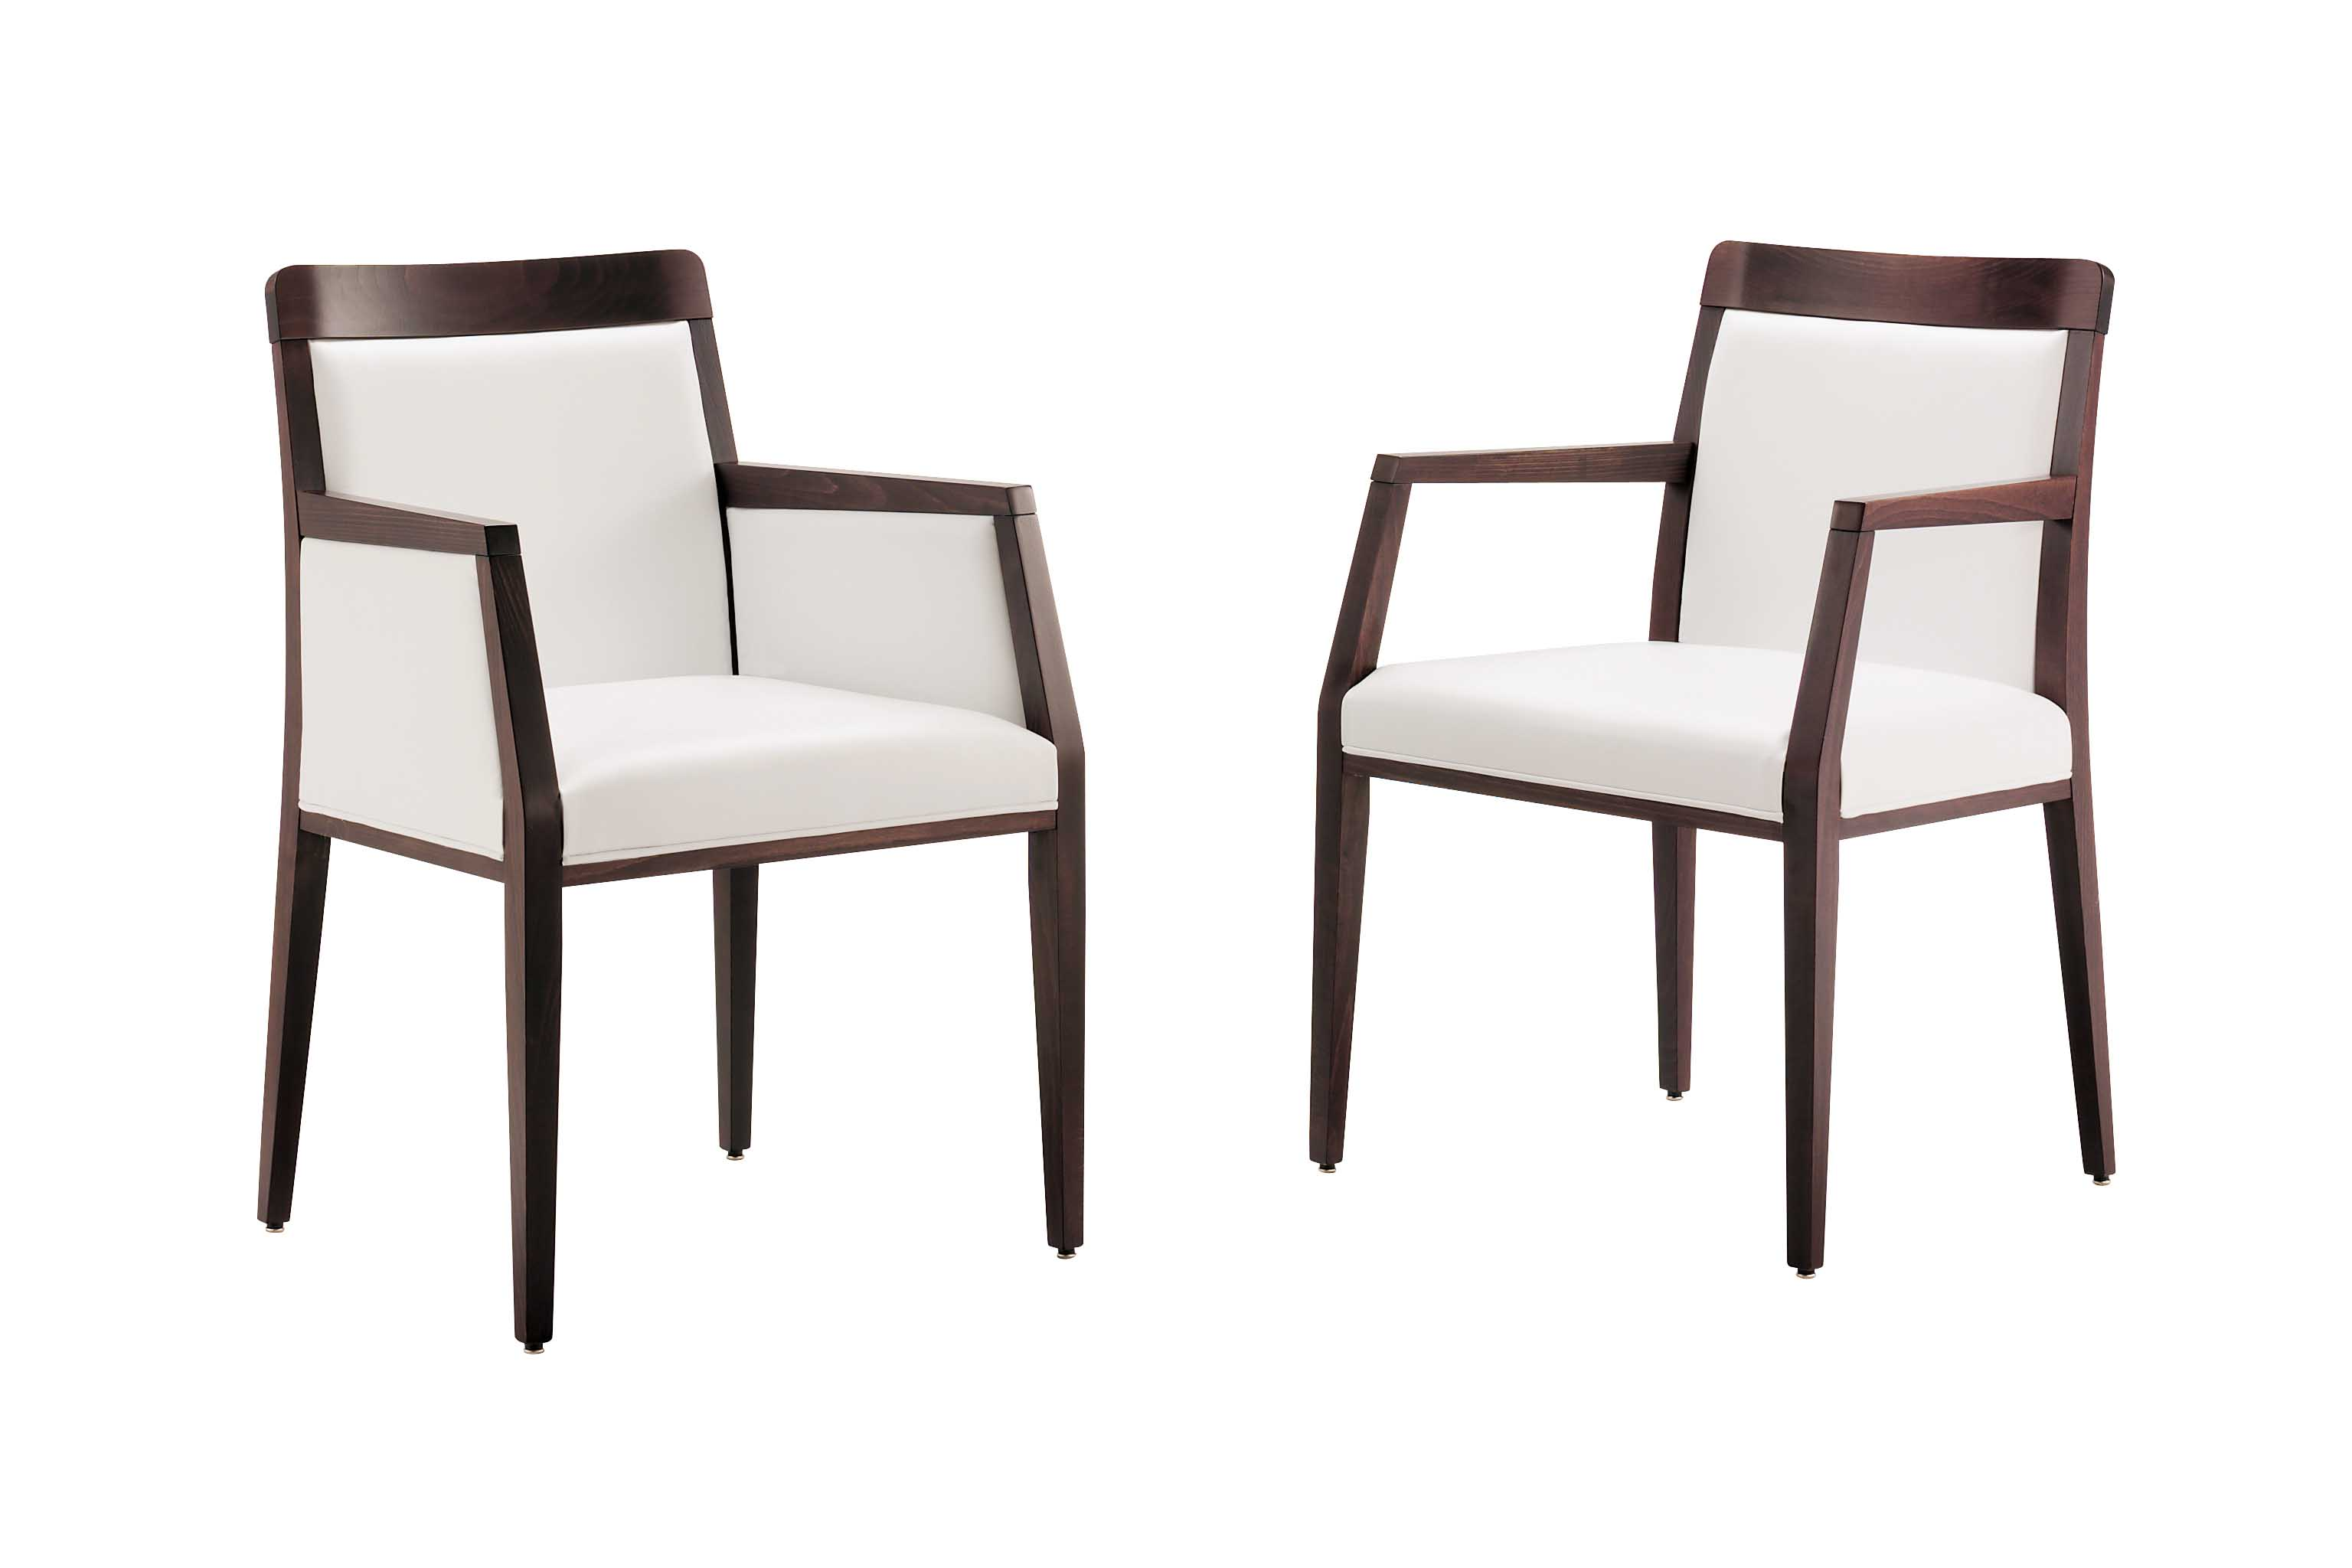 Restaurant chairs contemporary 4 0 10000 0 pieces for Contemporary seating